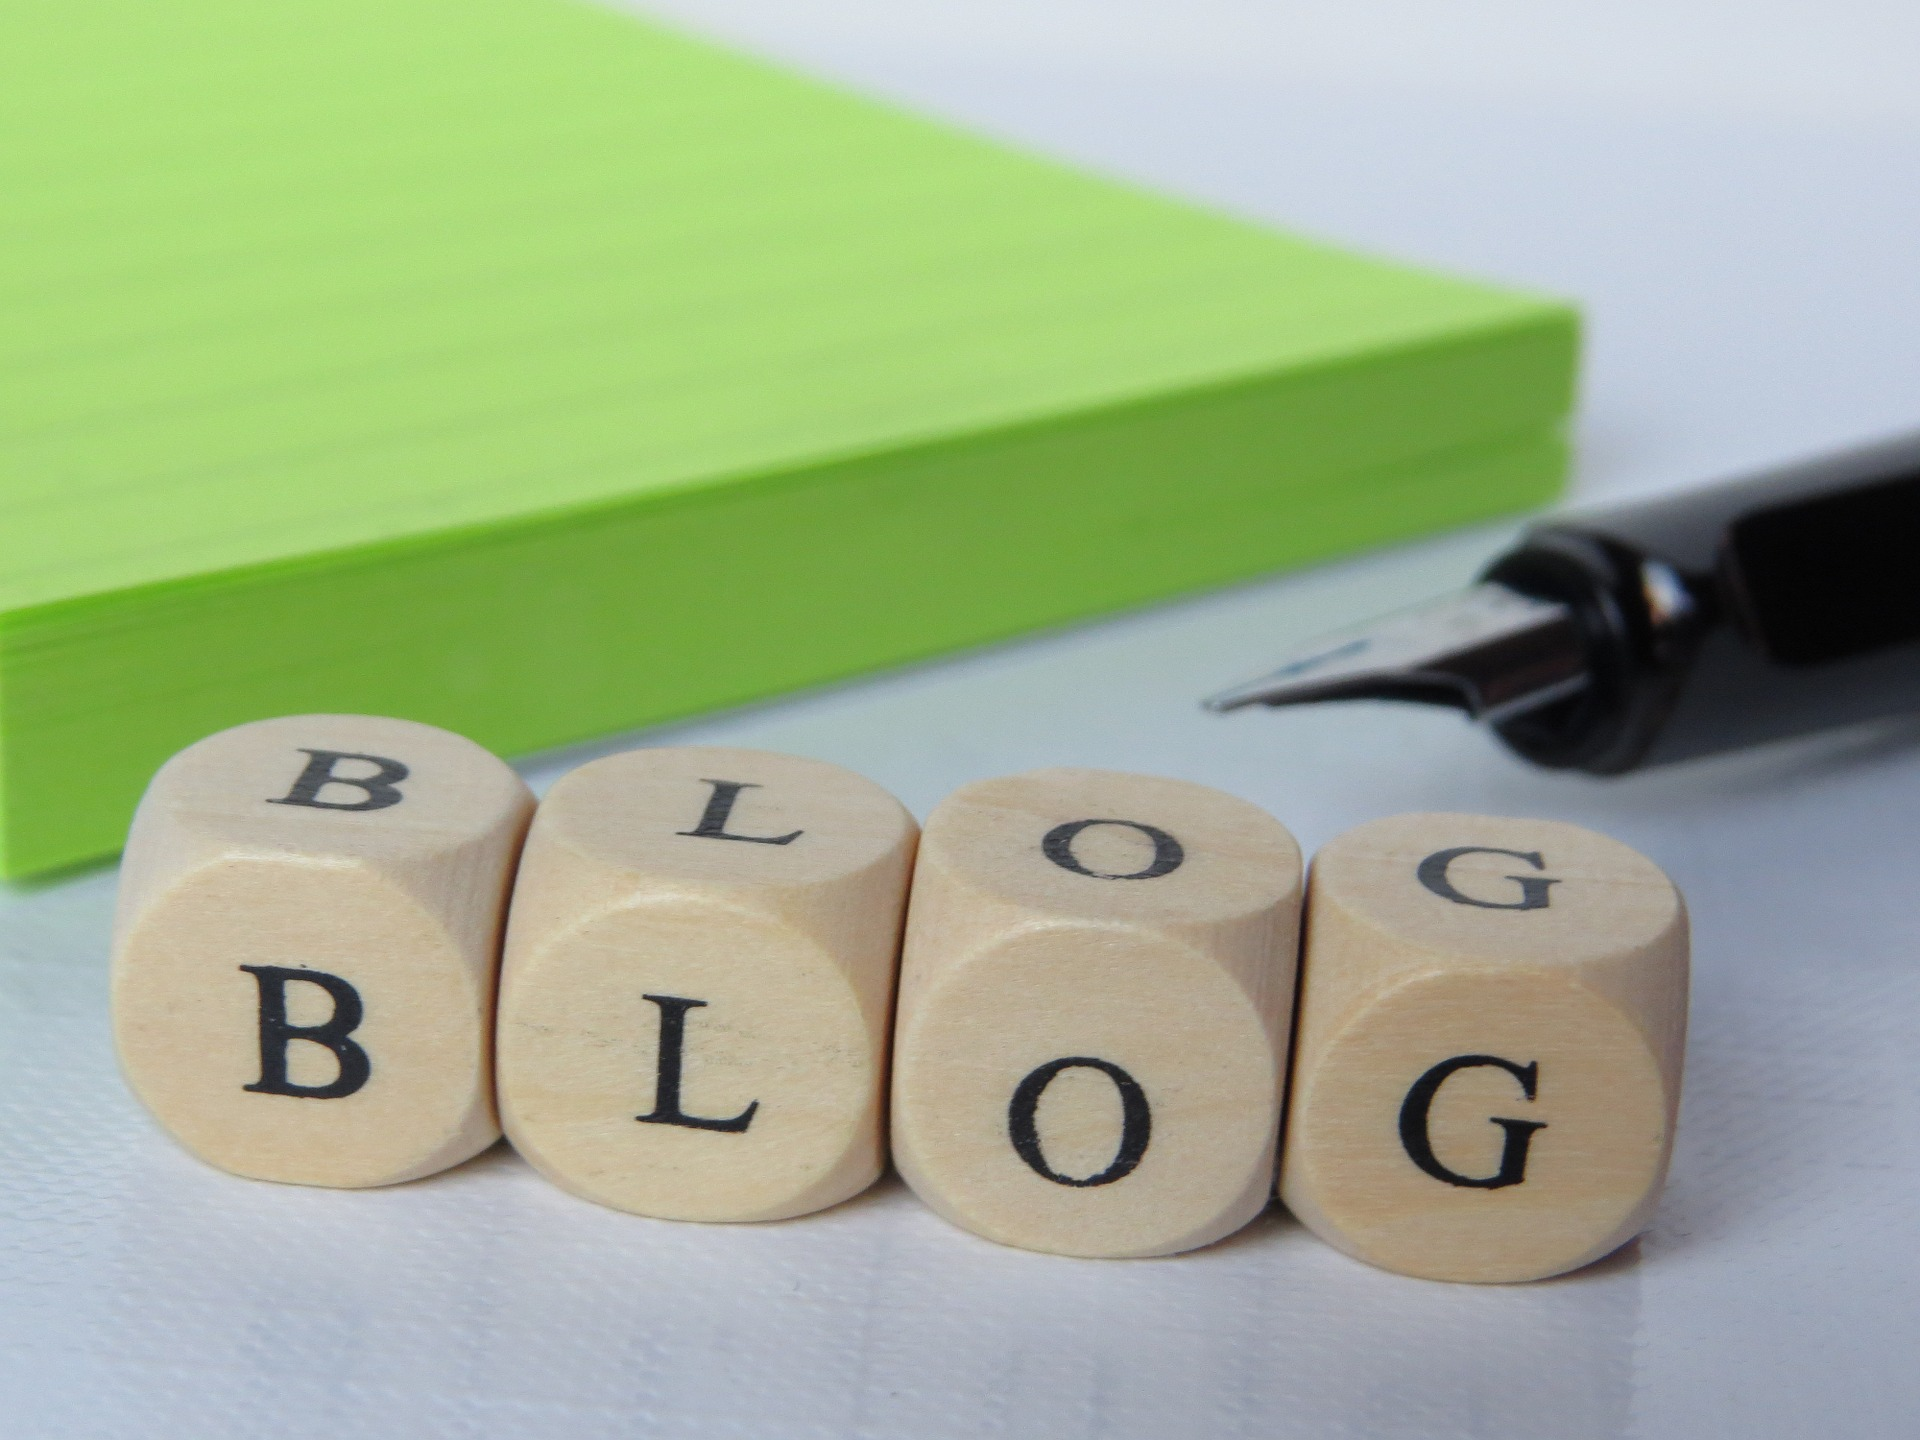 Blogging as an Enjoyable Career Experience